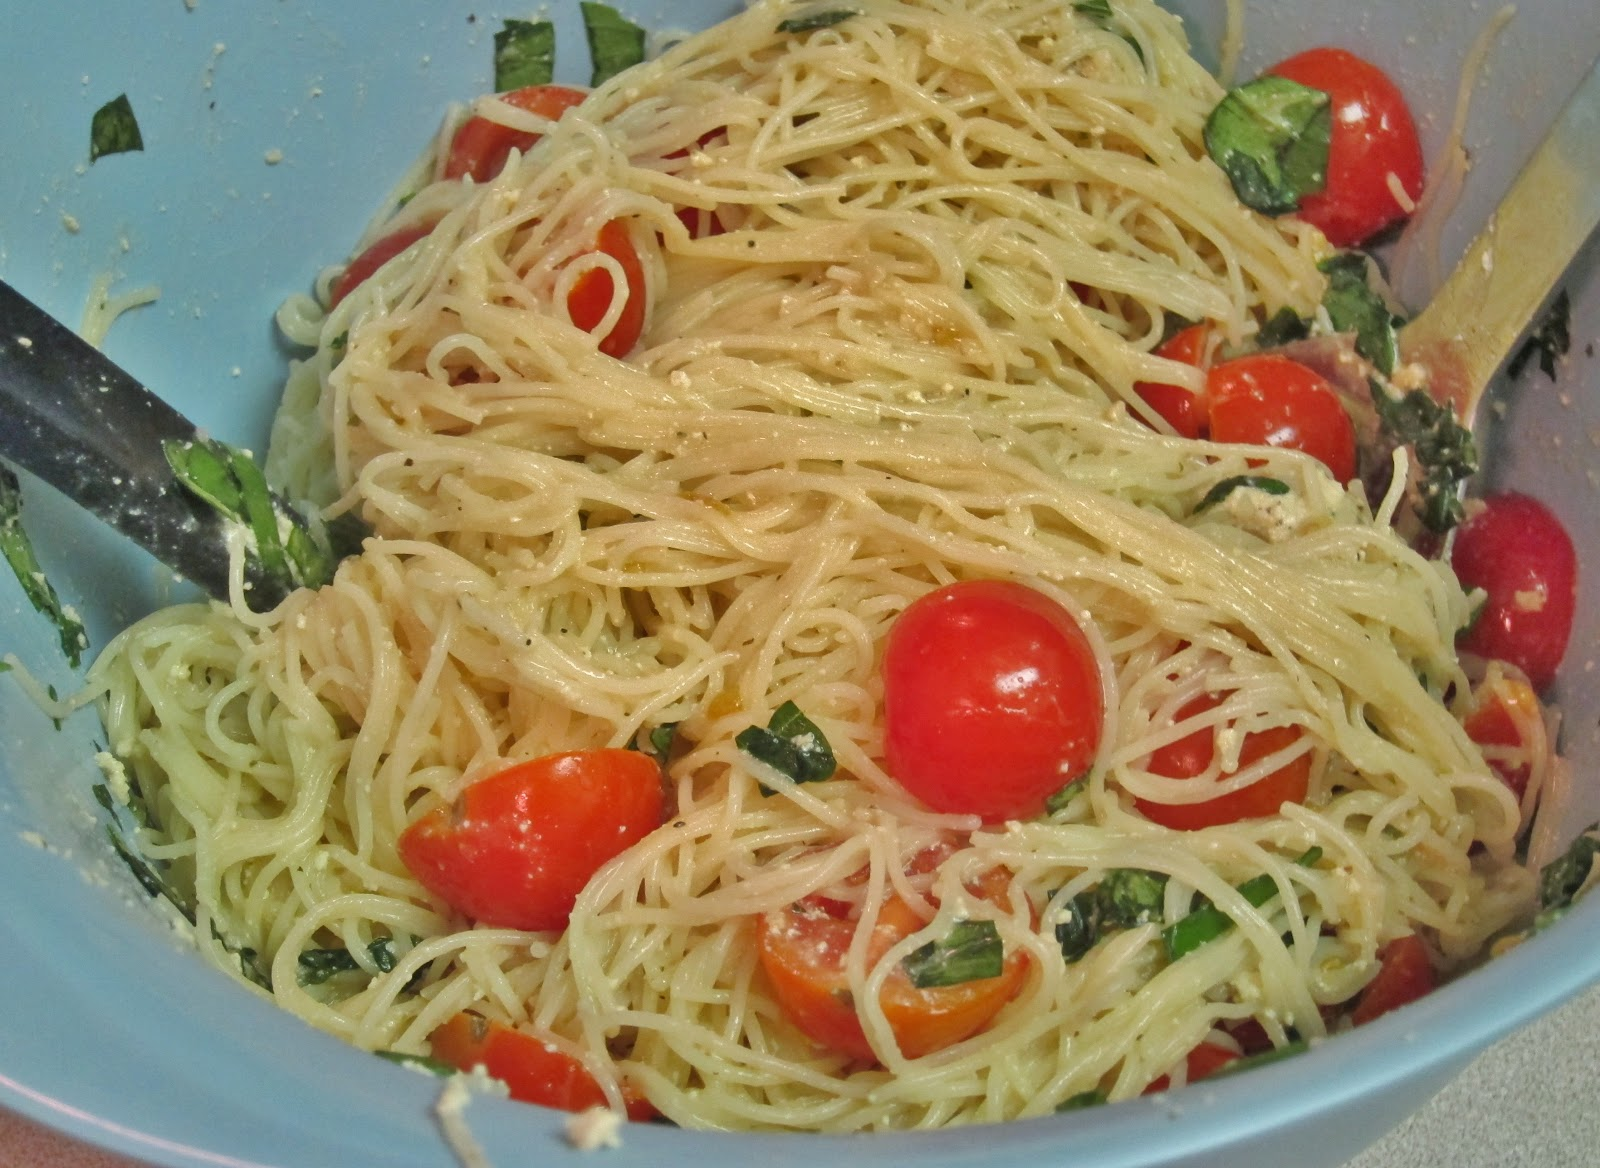 The Vegan Chronicle: Pasta with Herbed Goat Cheese and Cherry Tomatoes